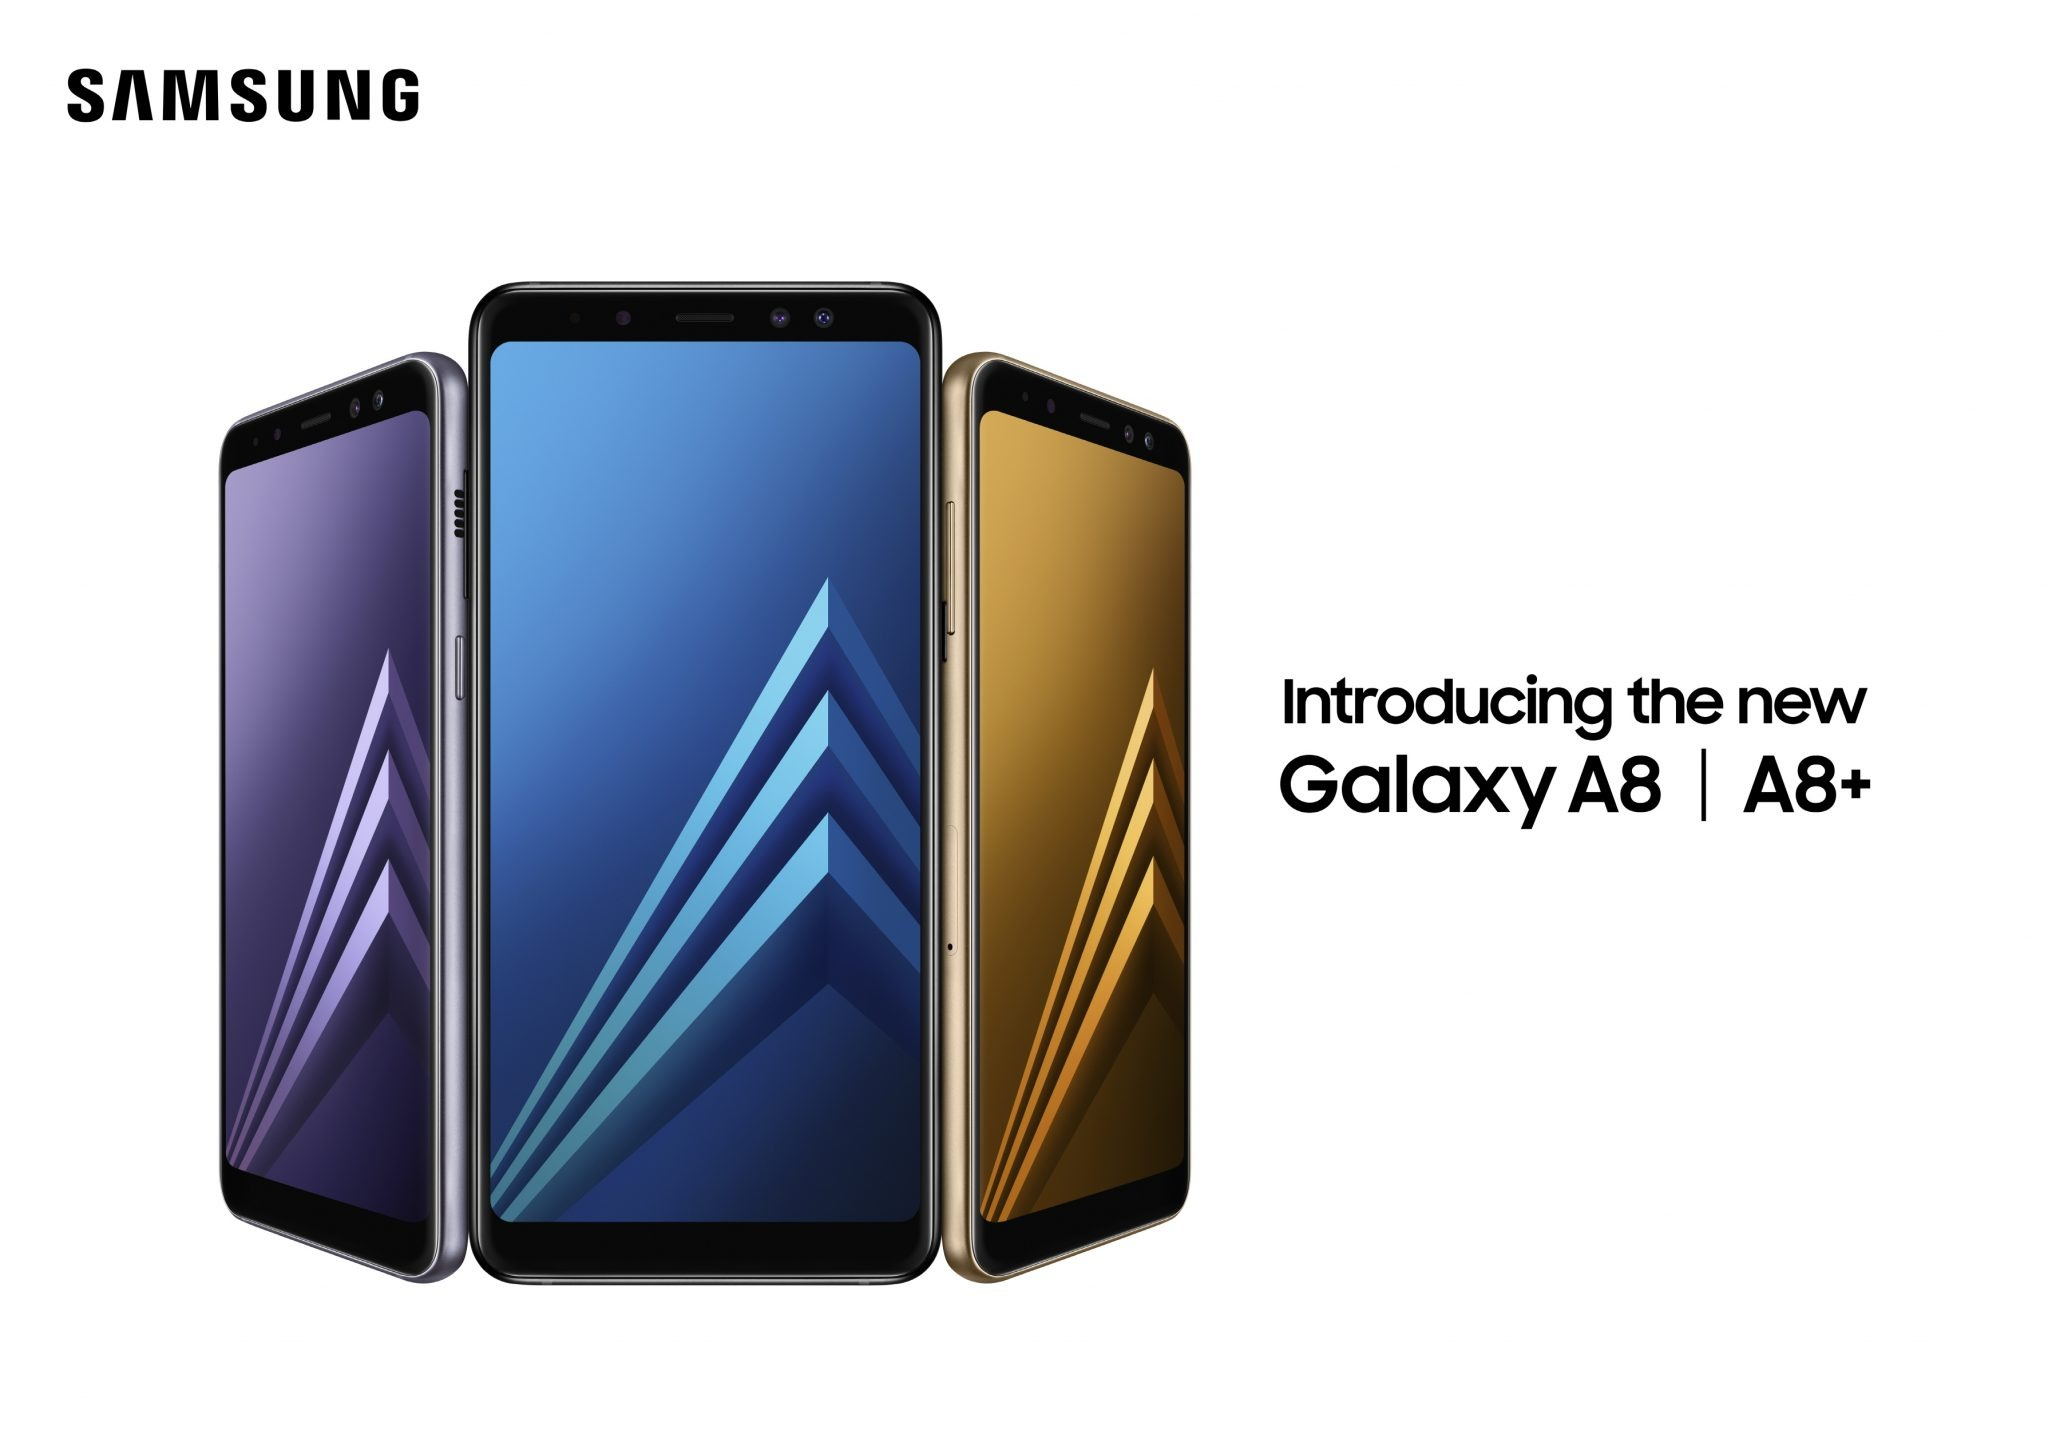 Samsung Galaxy A8 (2018) & A8+(2018) Announced, releasing in January 1